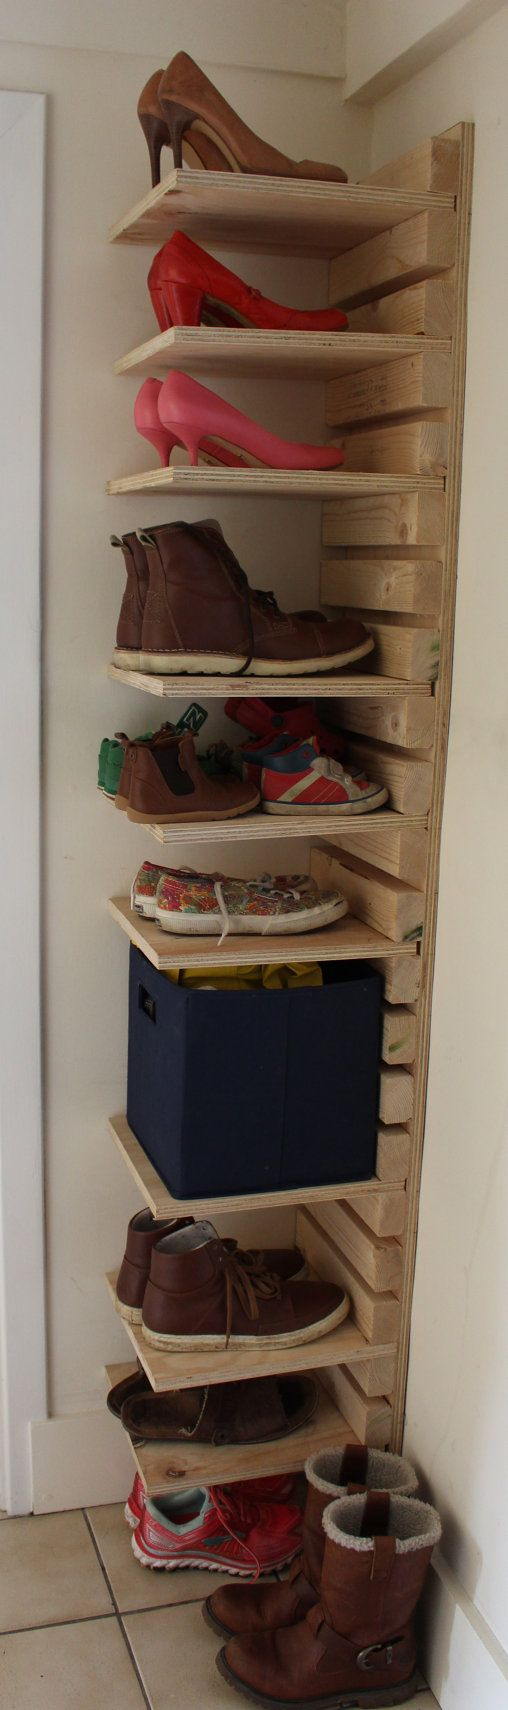 Shoe rack mm plywood wooden shoe racks and shoe rack